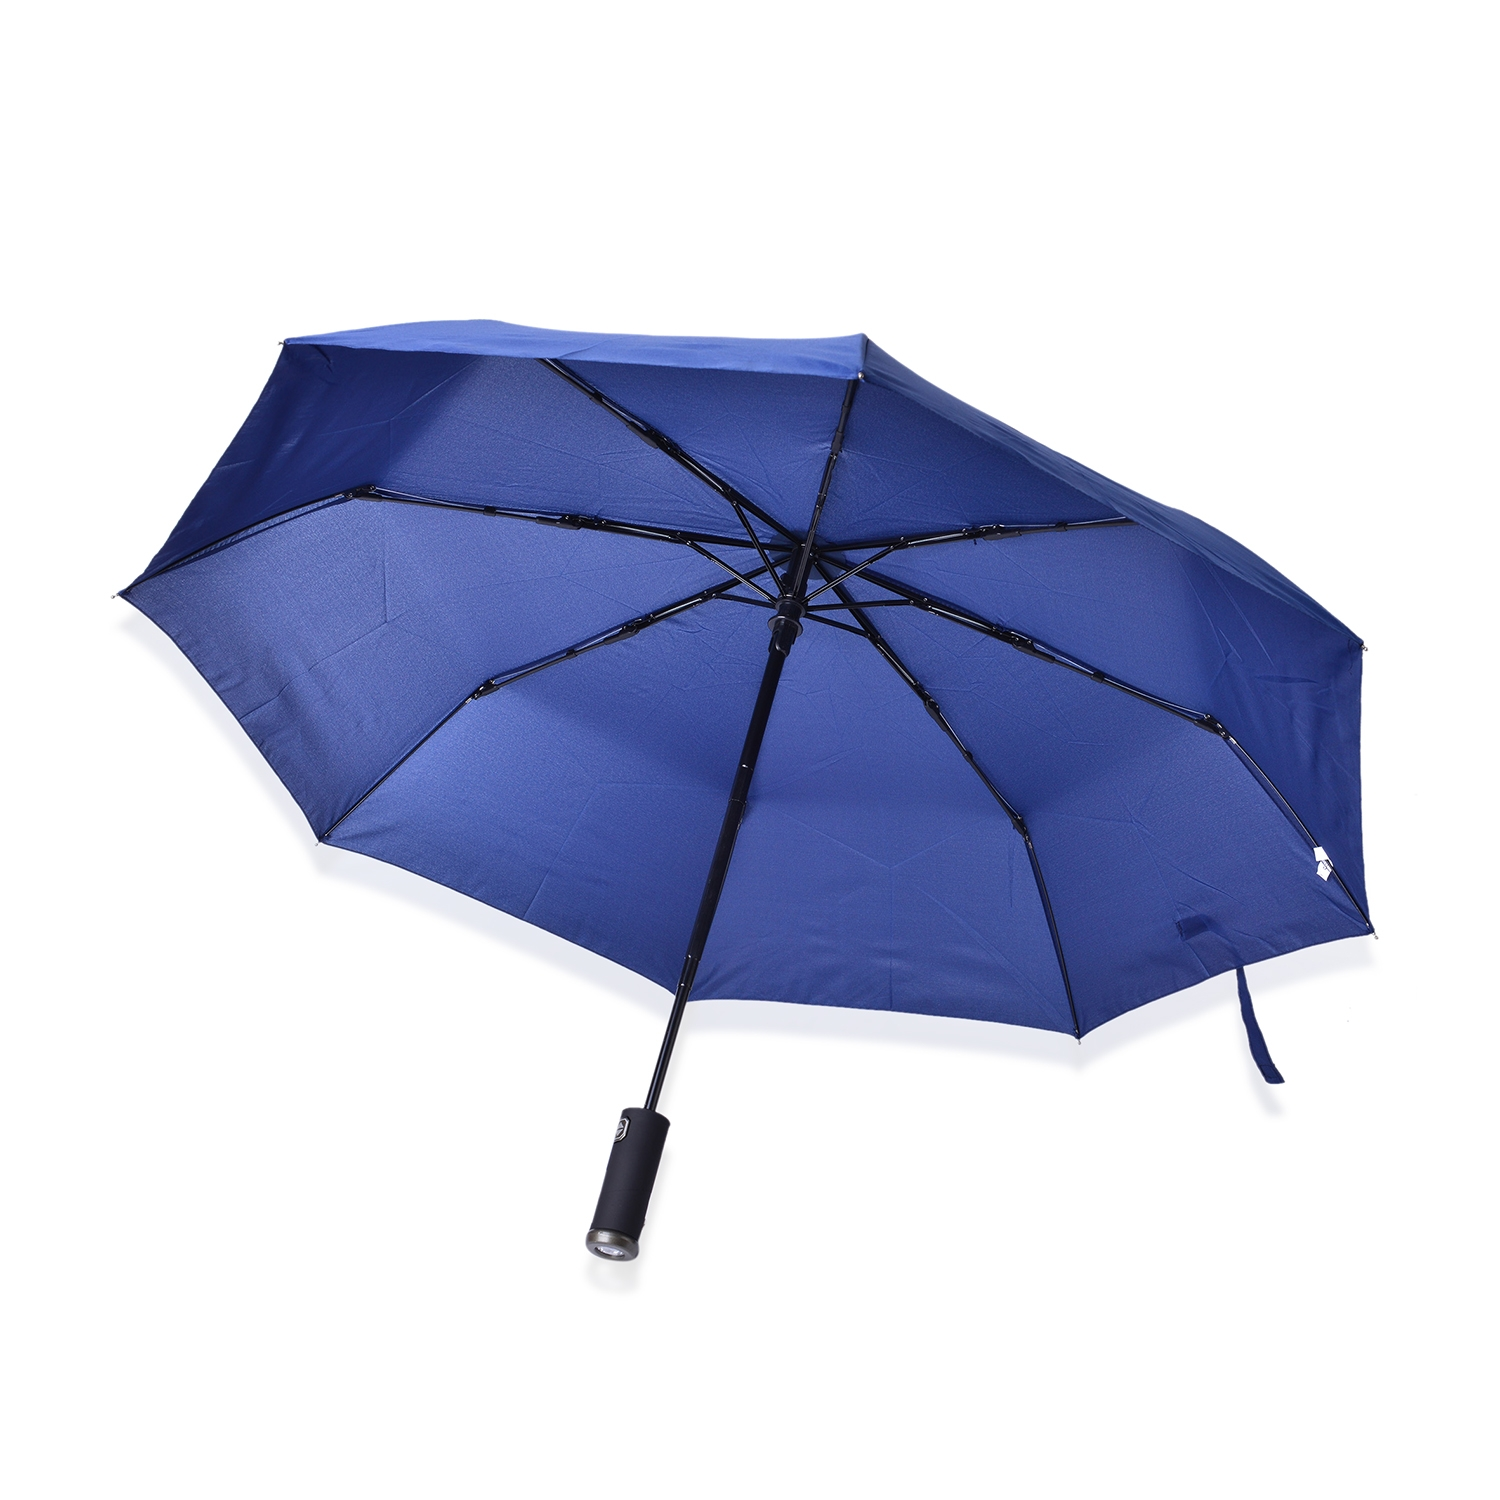 Blue Led Umbrella: Blue Three Fold Umbrella With LED Light Handle (12 In